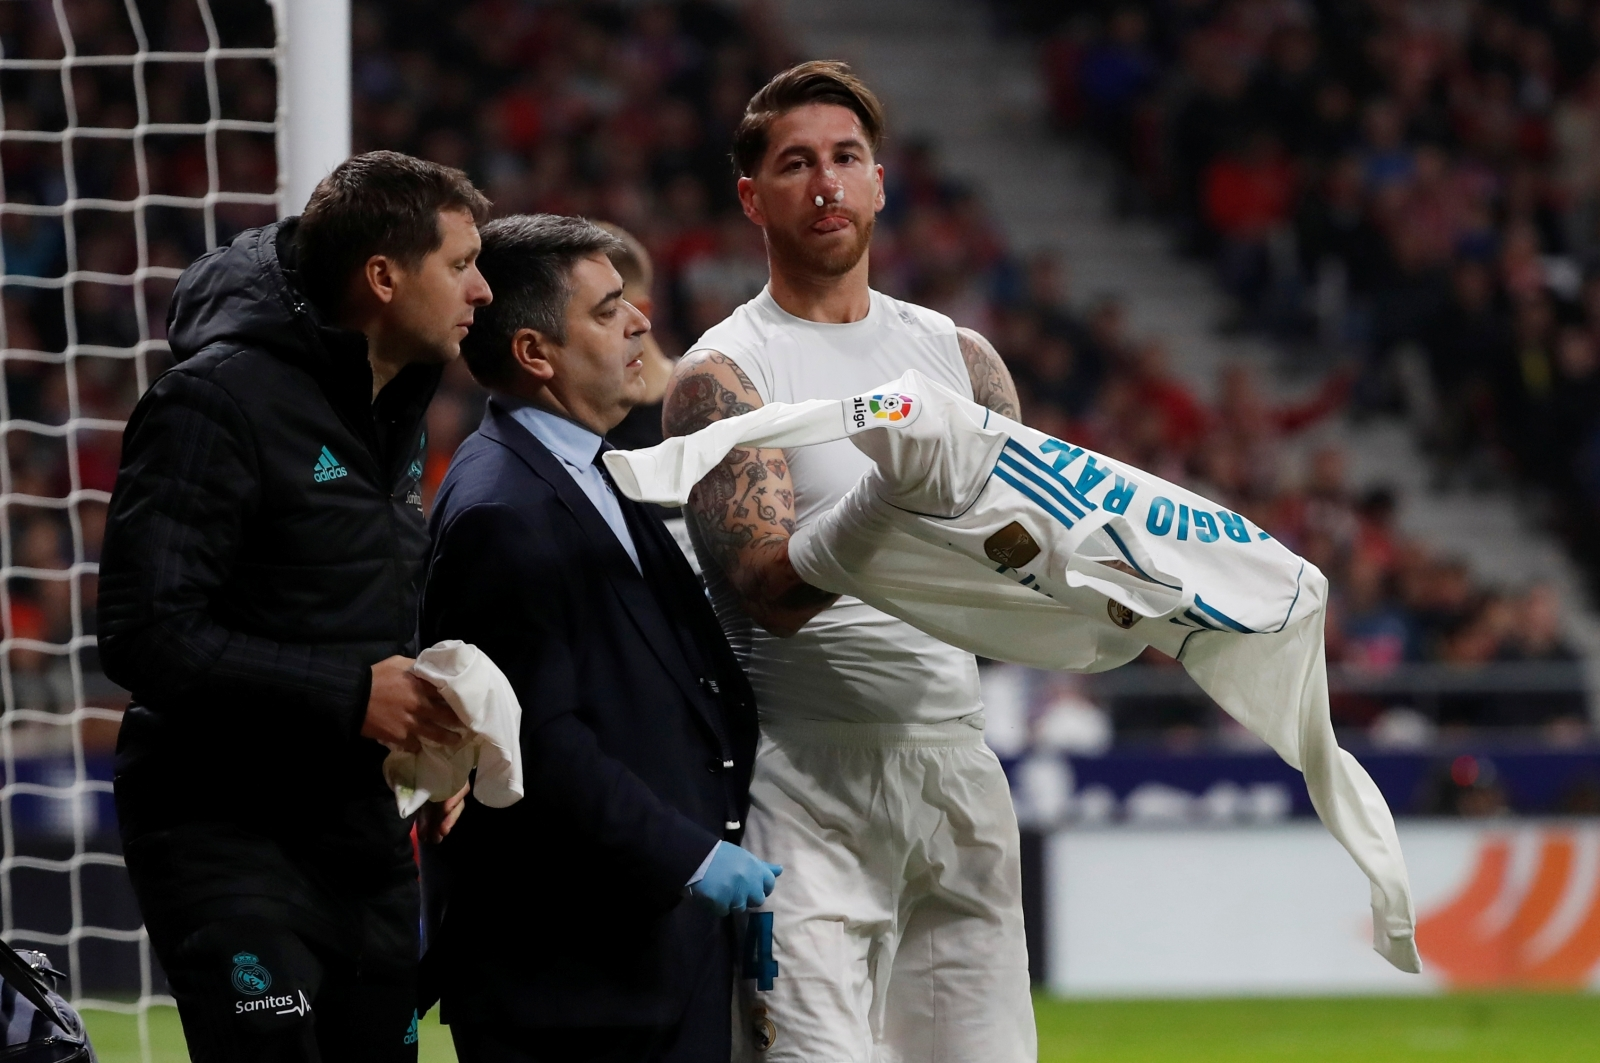 Real Madrid confirm Sergio Ramos nose break